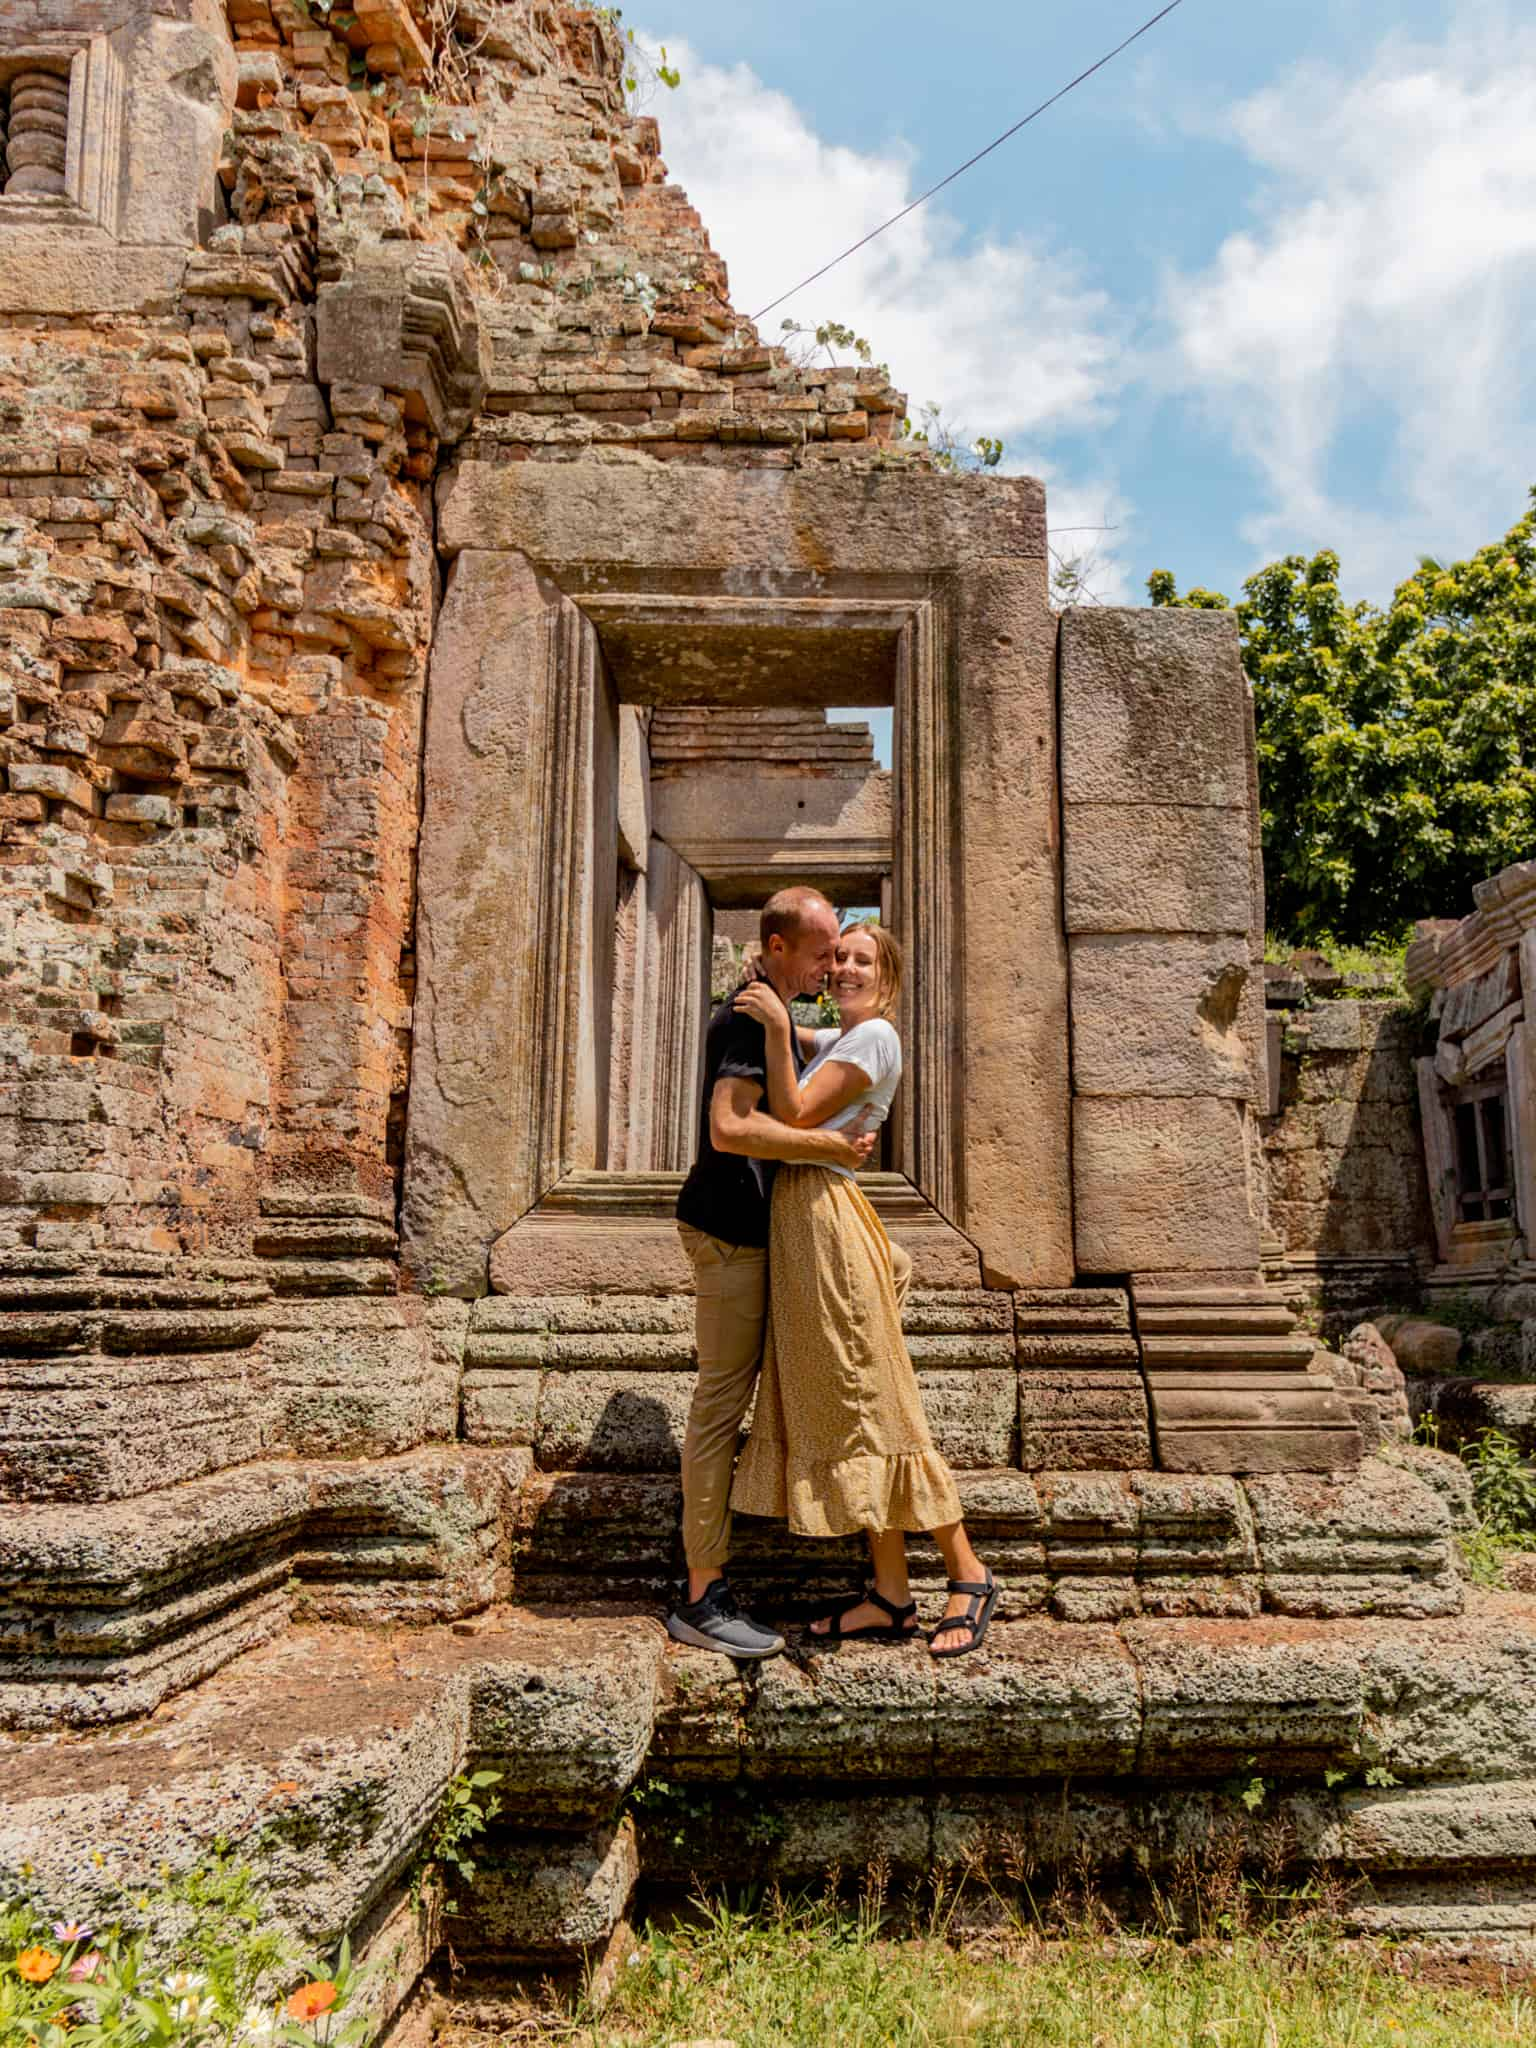 Alicia & Nate at temple, Cambodia